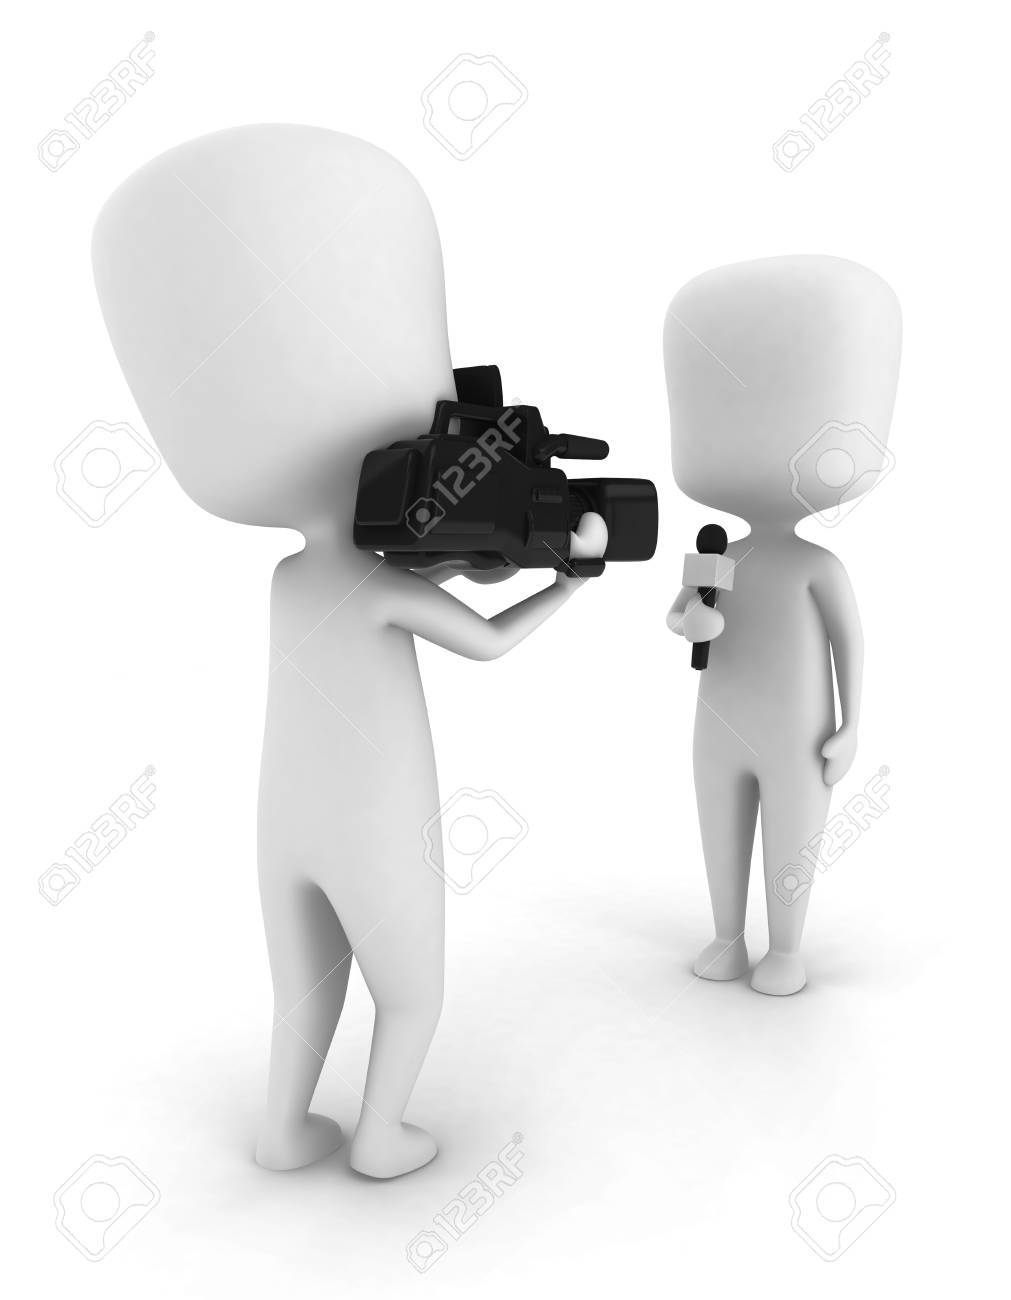 3D Illustration of a Man Doing a Live Report Stock Illustration - 8993559